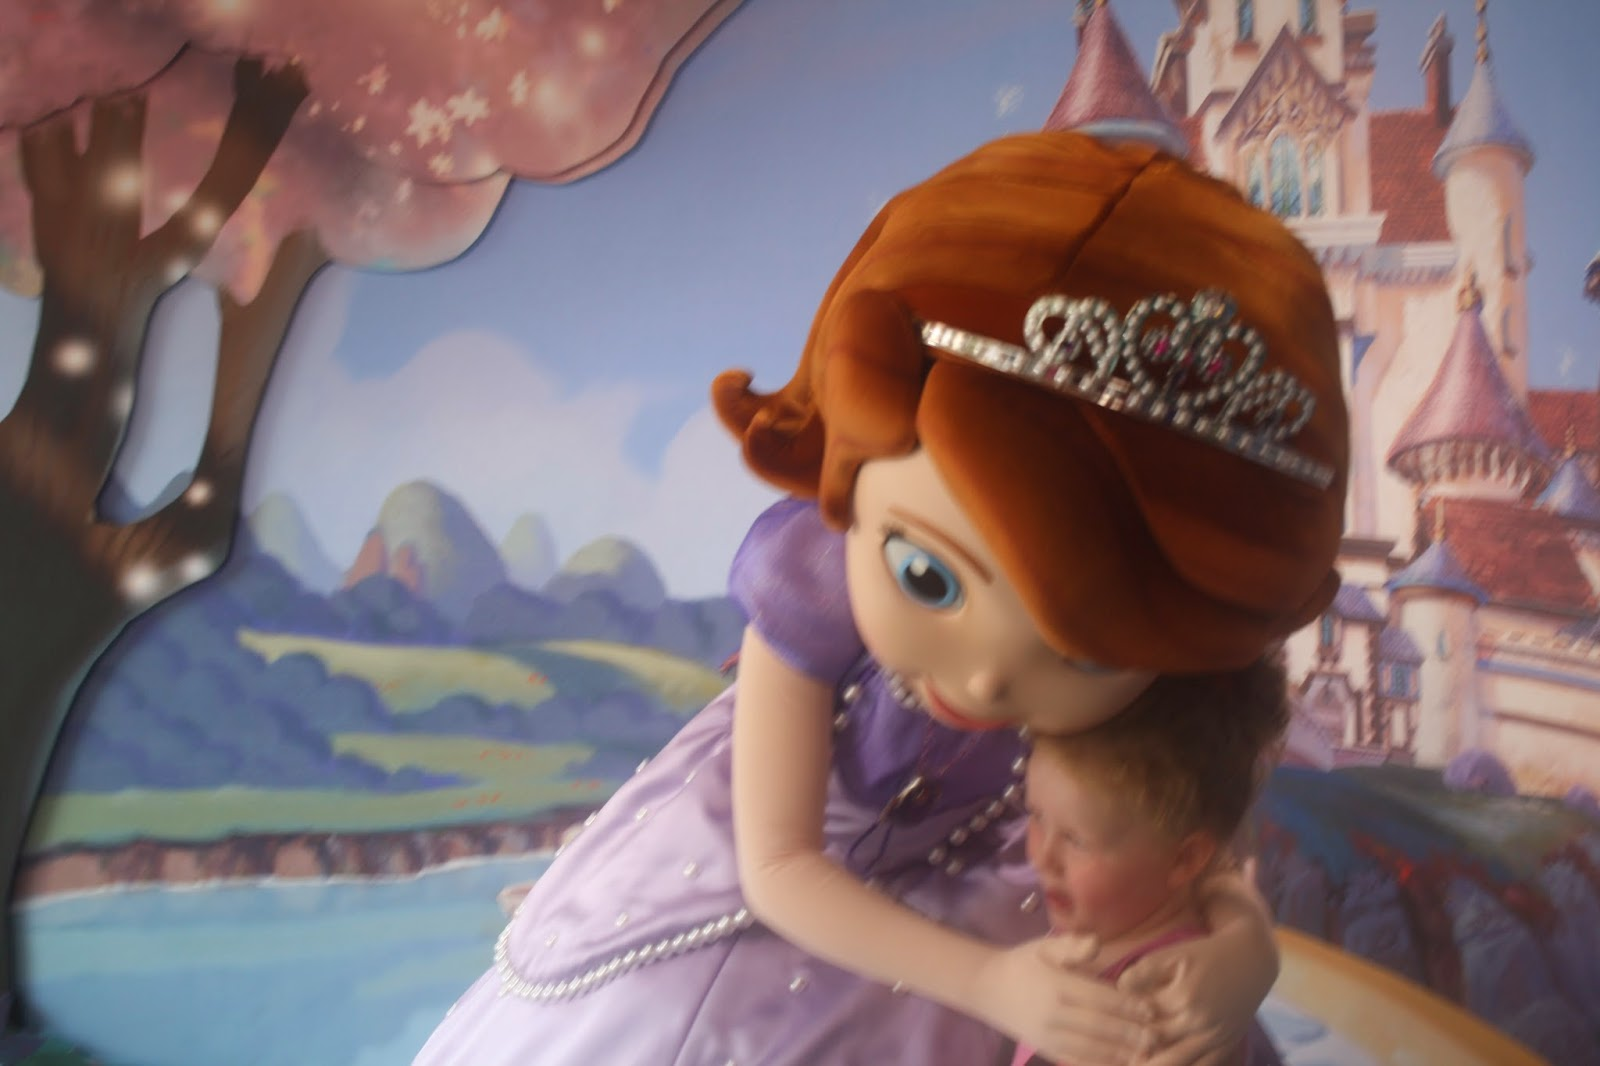 Disney vacation doctor disneyjunioropia how to meet your favorite there was no previous meet and greet for doc mcstuffins sofia the first does already have a meet and greet just outside the disney junior live attraction kristyandbryce Images